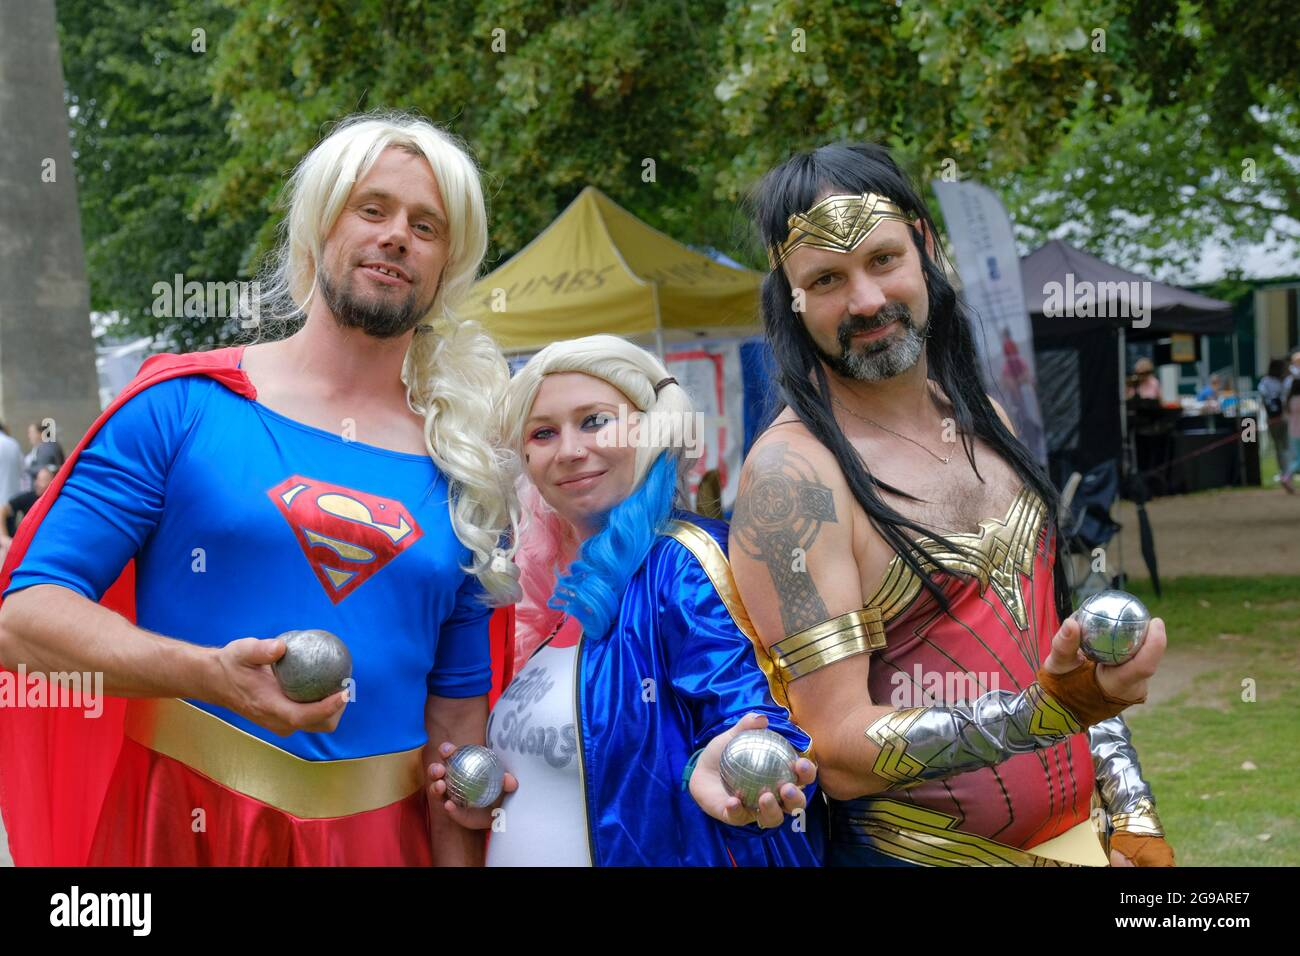 bath-somerset-uk-25th-july-2021-the-annual-bath-boules-festival-reaches-its-third-day-in-queens-square-in-bath-this-charity-event-is-sponsored-by-many-of-the-professional-organisation-with-offices-around-the-square-although-all-are-welcome-pictured-is-the-team-from-the-volunteer-rifle-mans-arms-credit-jmf-newsalamy-live-news-2G9ARE7.jpg